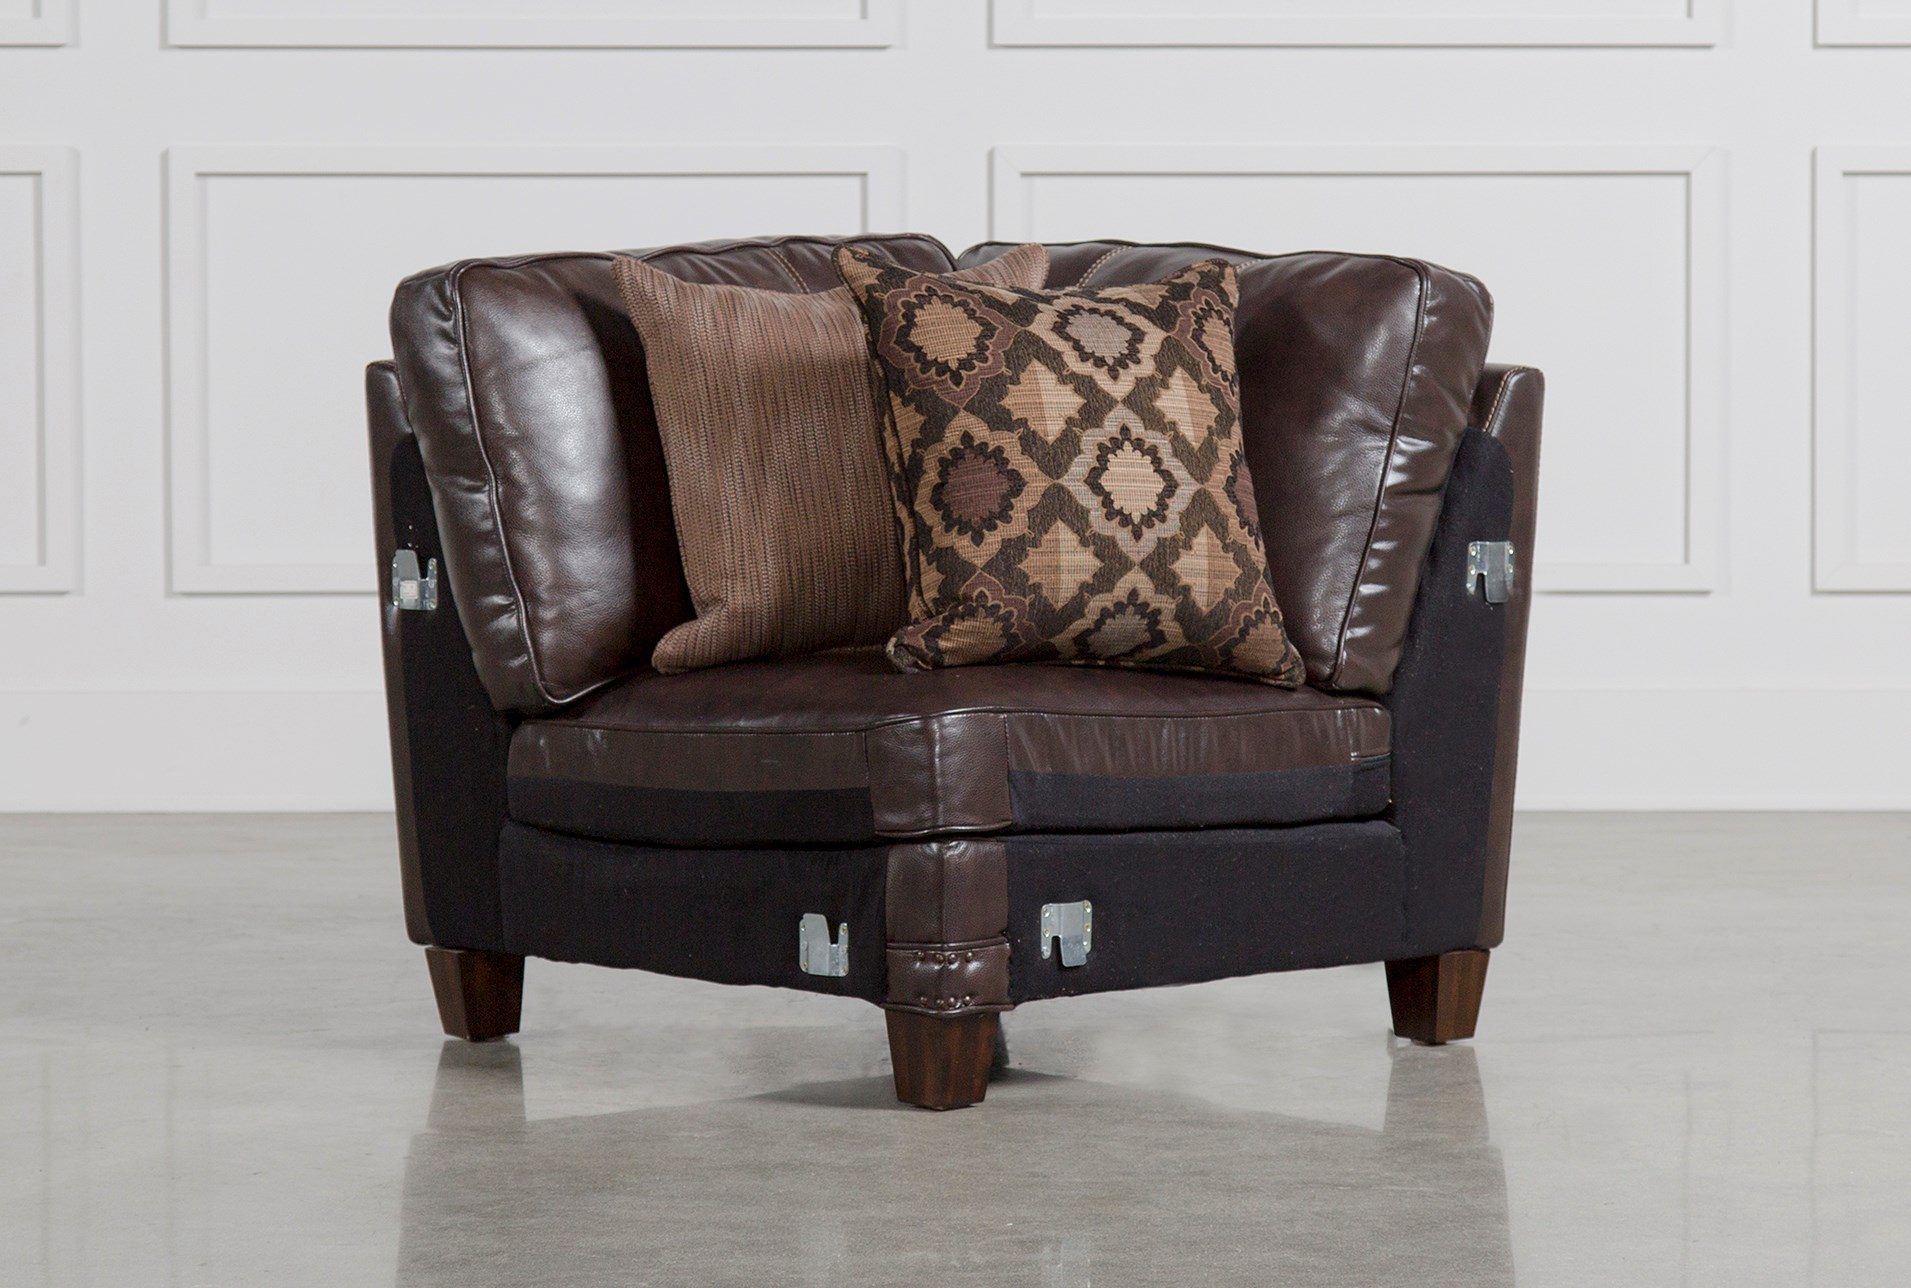 Barnaby Leather Corner Chair Qty 1 Has Been Successfully Added To Your Cart